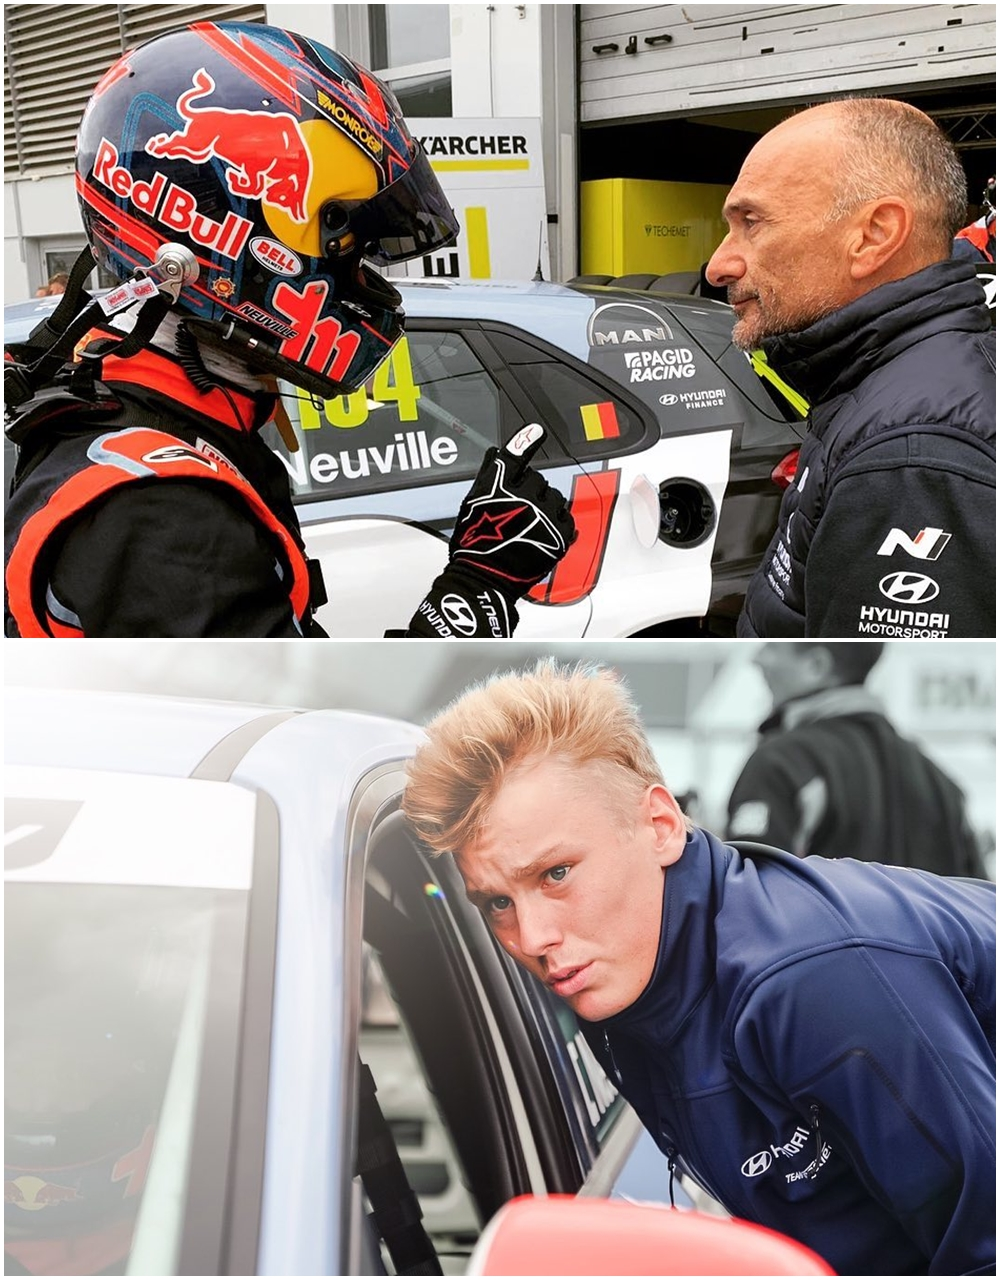 2019_tcr_germany_gabriele_tarquini_luca_engstler_thierry_neuville.jpg